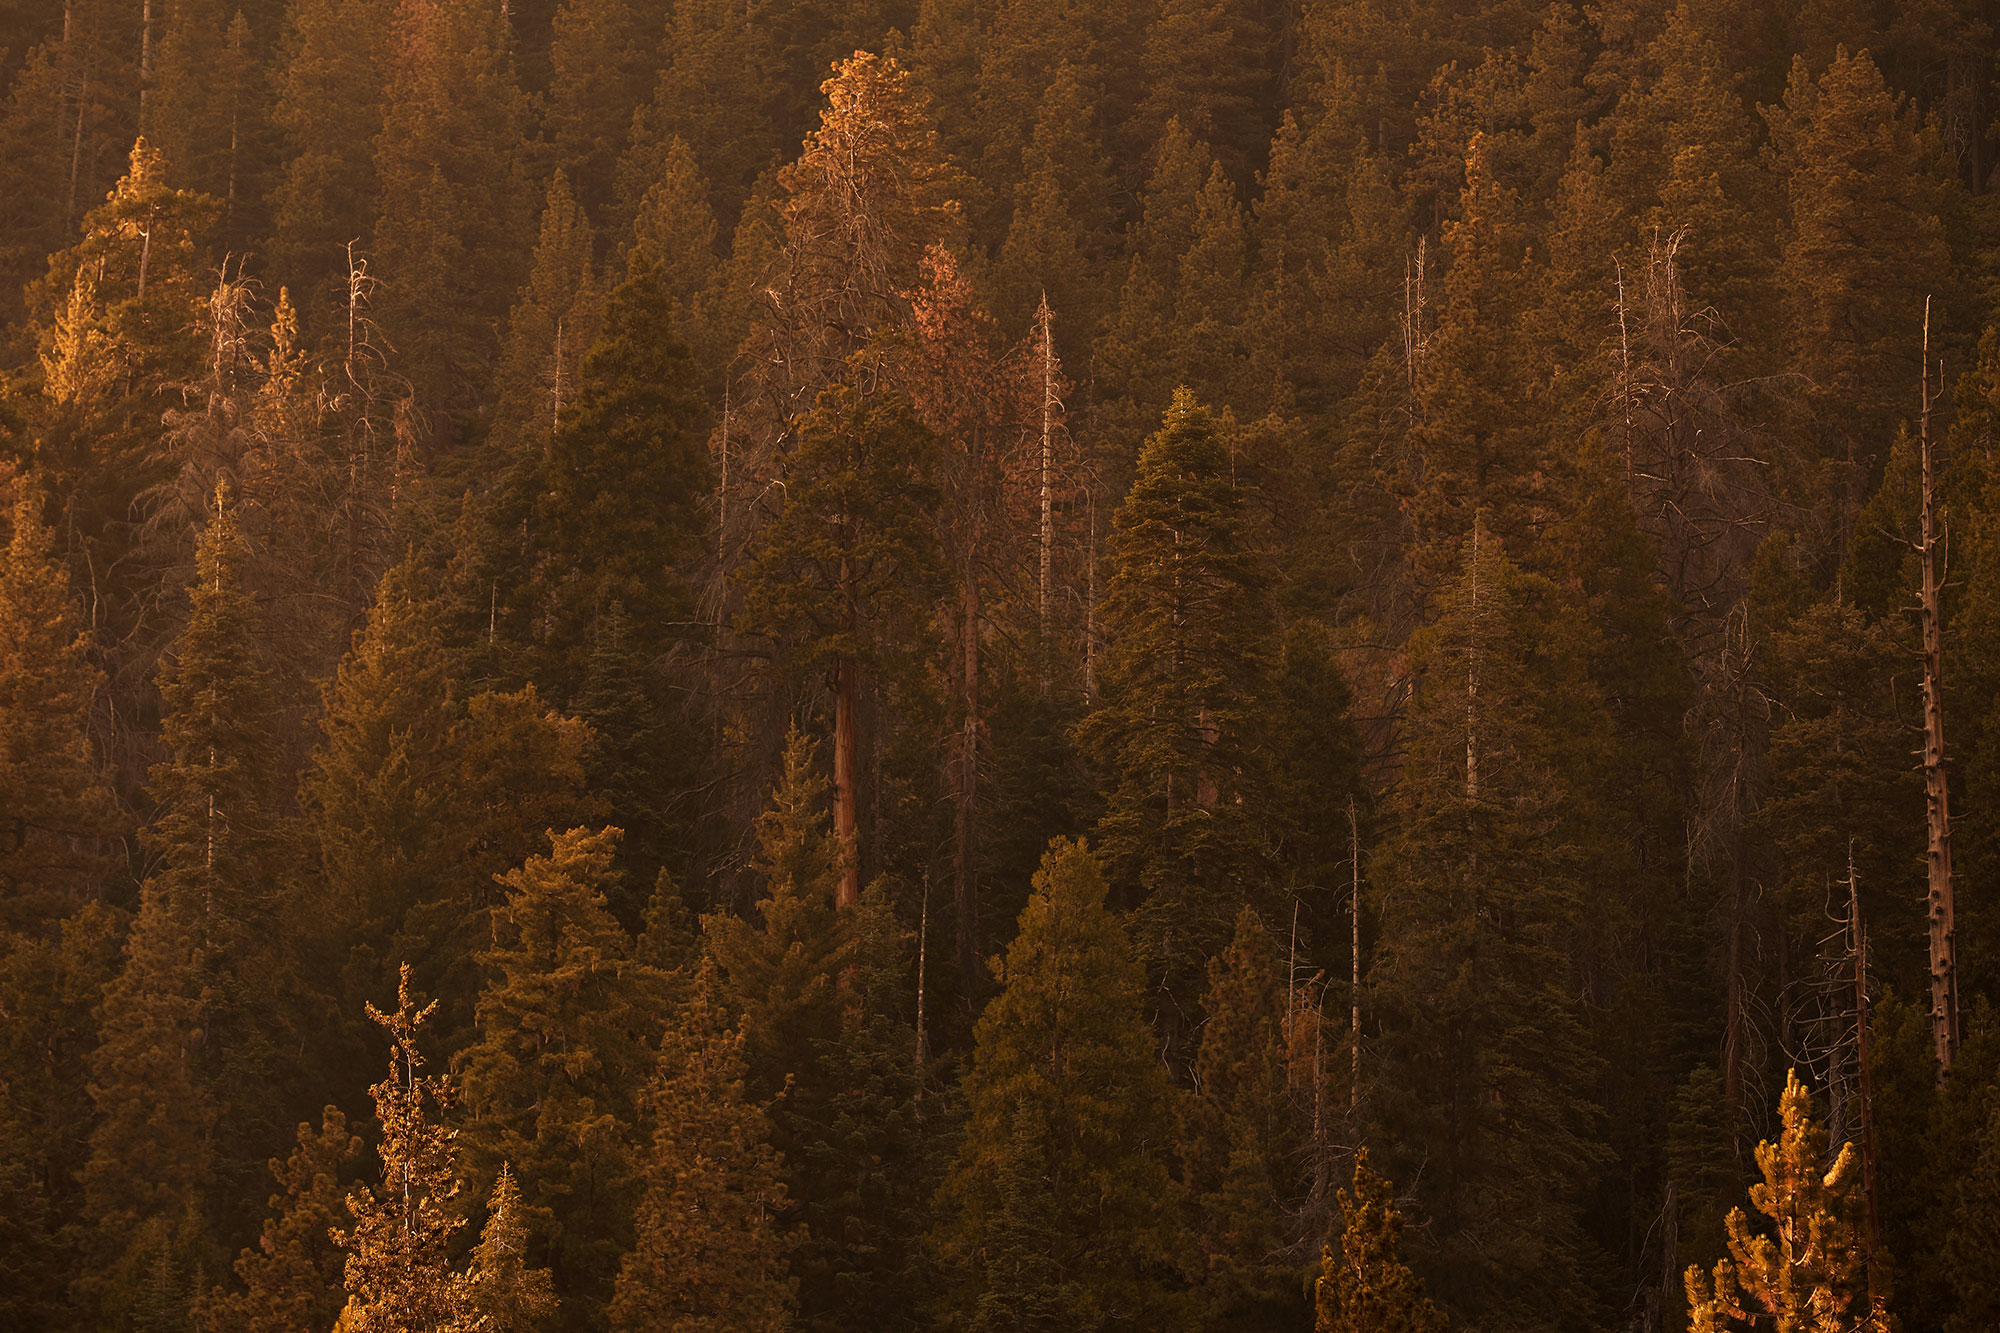 Sequoia National Park -  Stephen Denton Photography, Los Angeles, California based interior & hospitality photographer